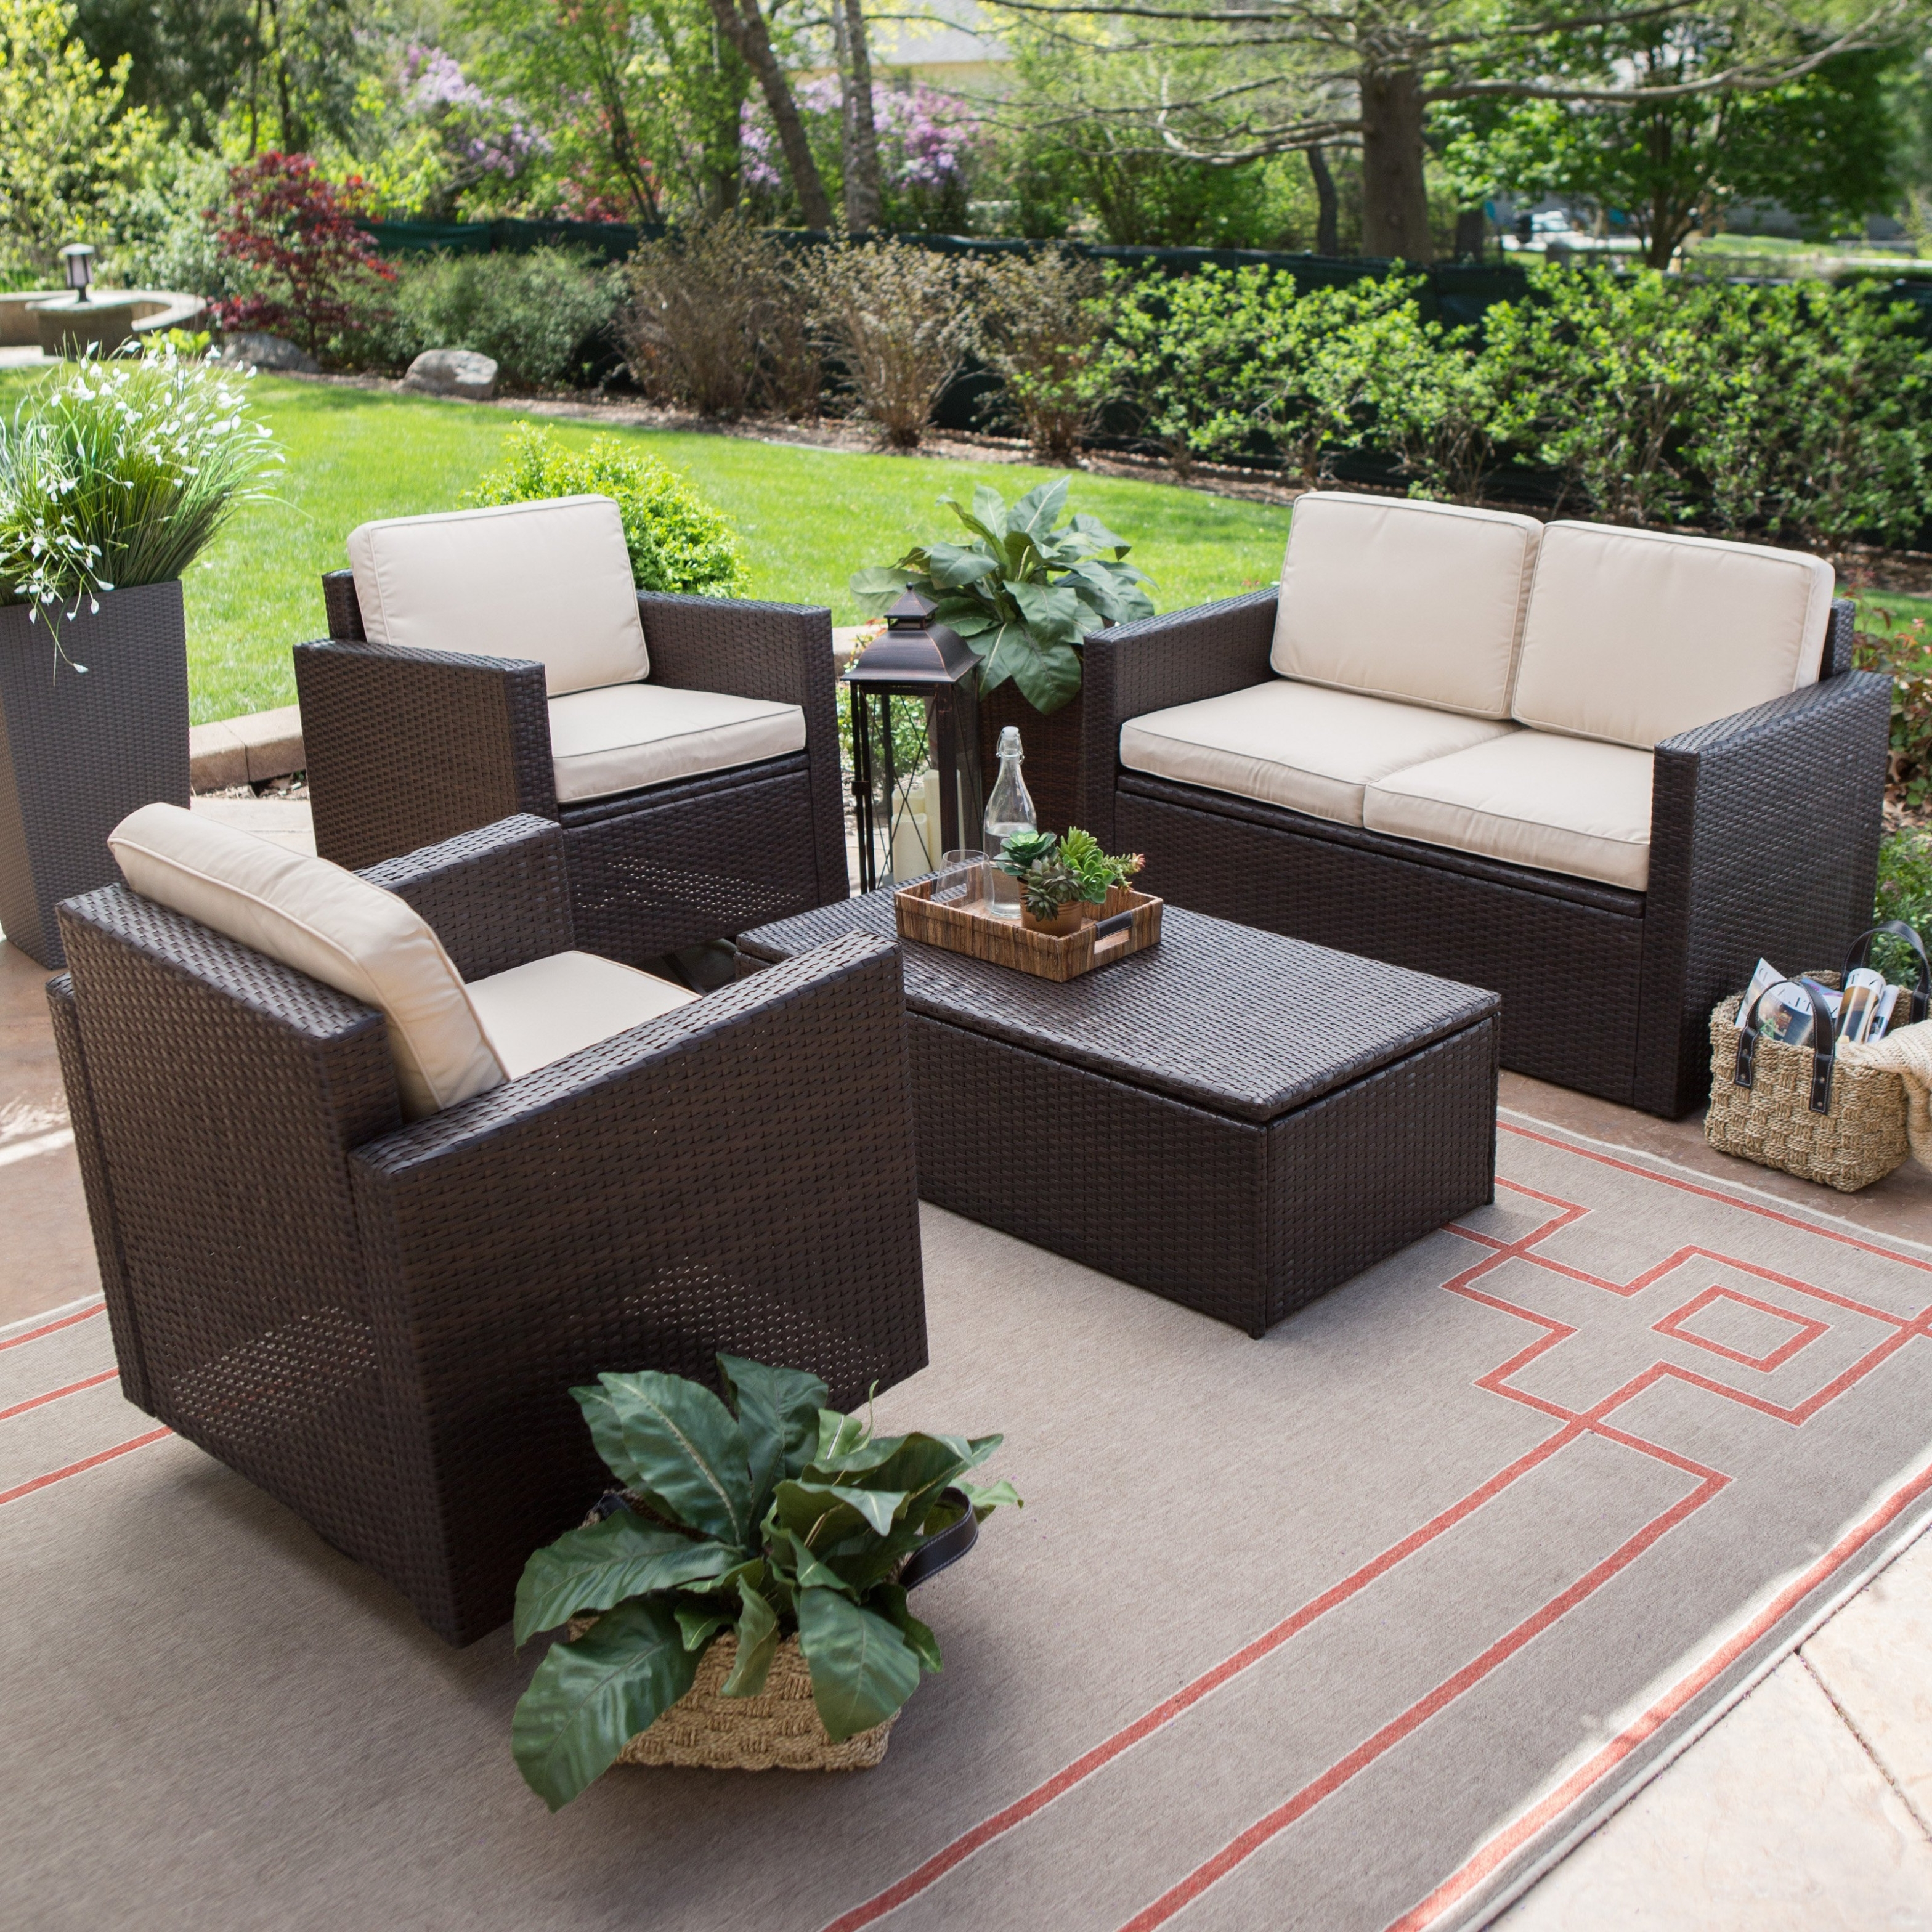 Preferred 30 Luxury Small Sectional Patio Furniture Concept Throughout Small Patio Conversation Sets (View 10 of 15)